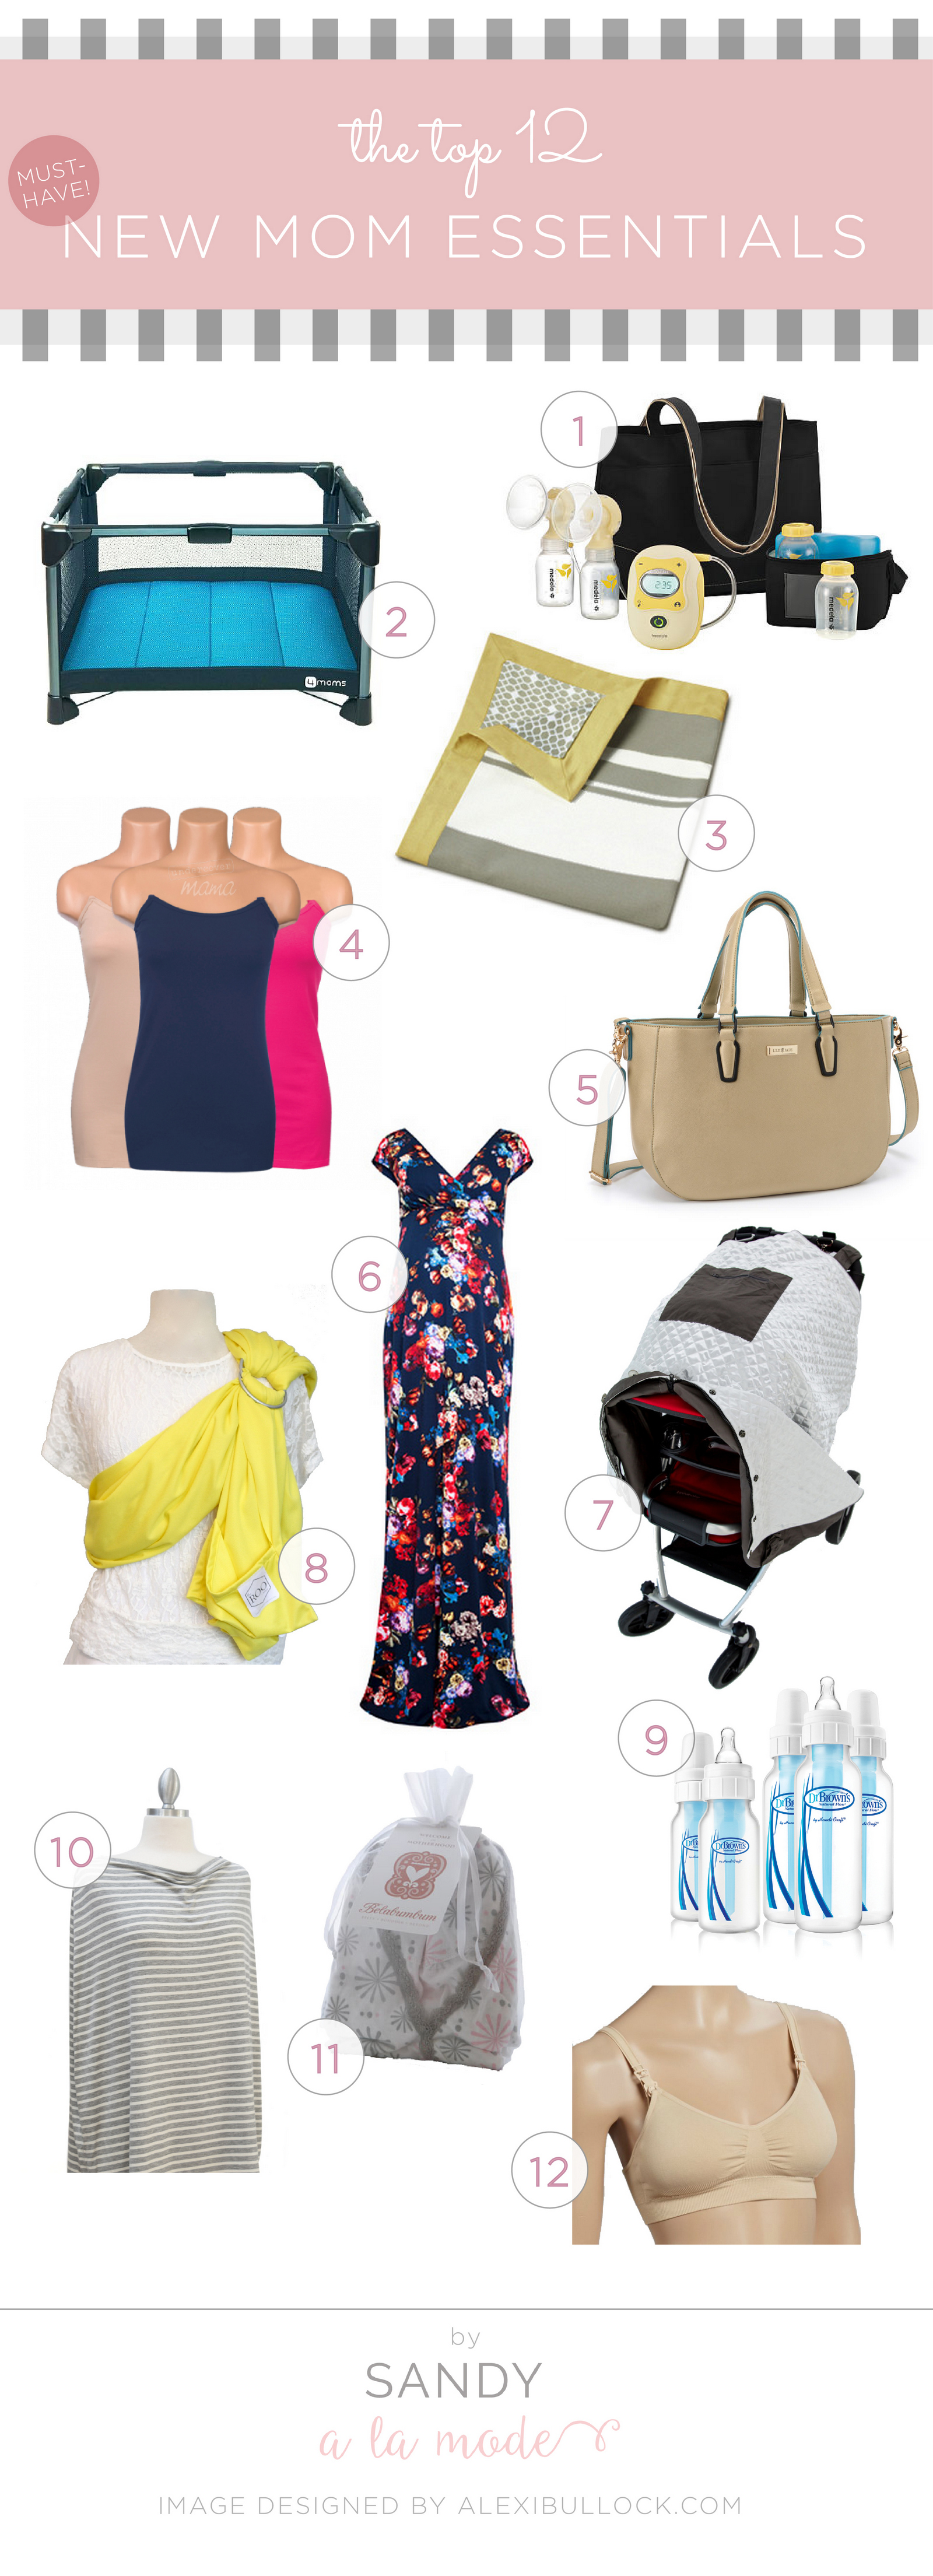 Sandy a la Mode - New Mom Essentials Must-Haves Guide